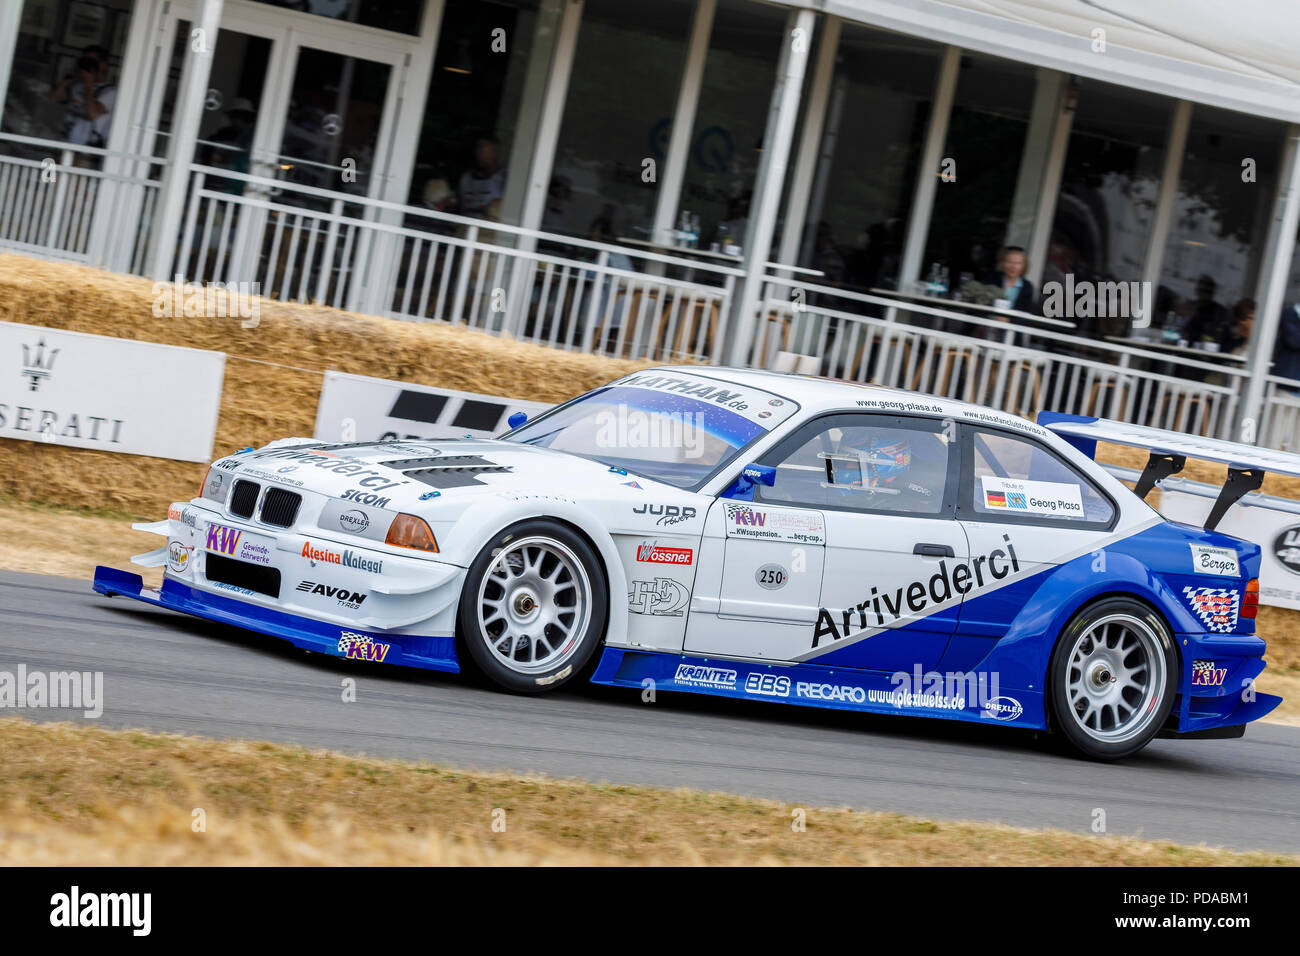 ac3d994ca03fd6 1991 BMW E36 V8 JUDD Pikes Peak entrant with driver Joerg Weidinger at the  2018 Goodwood